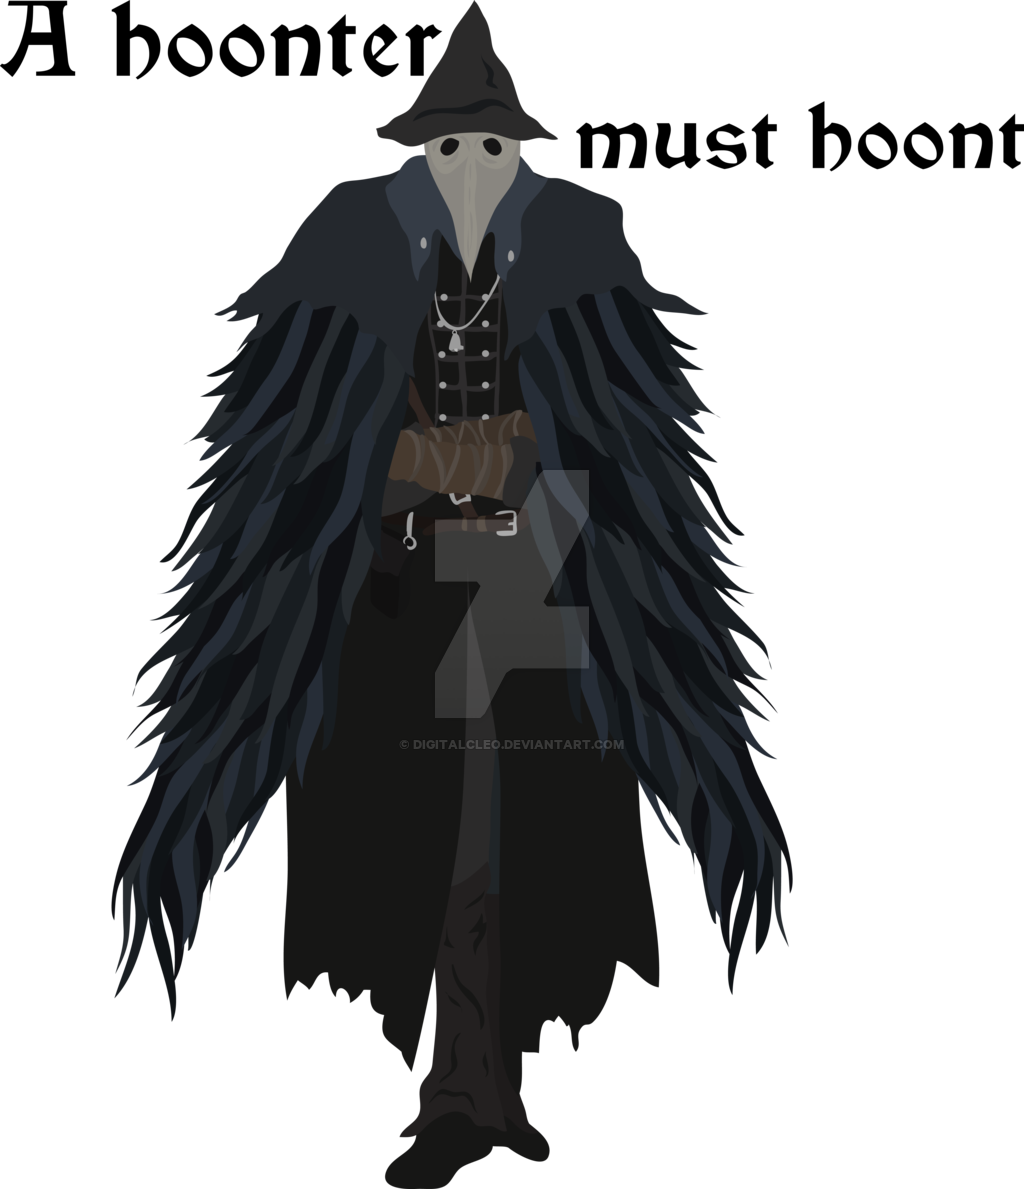 clipart Vayne . Bloodborne drawing eileen the crow